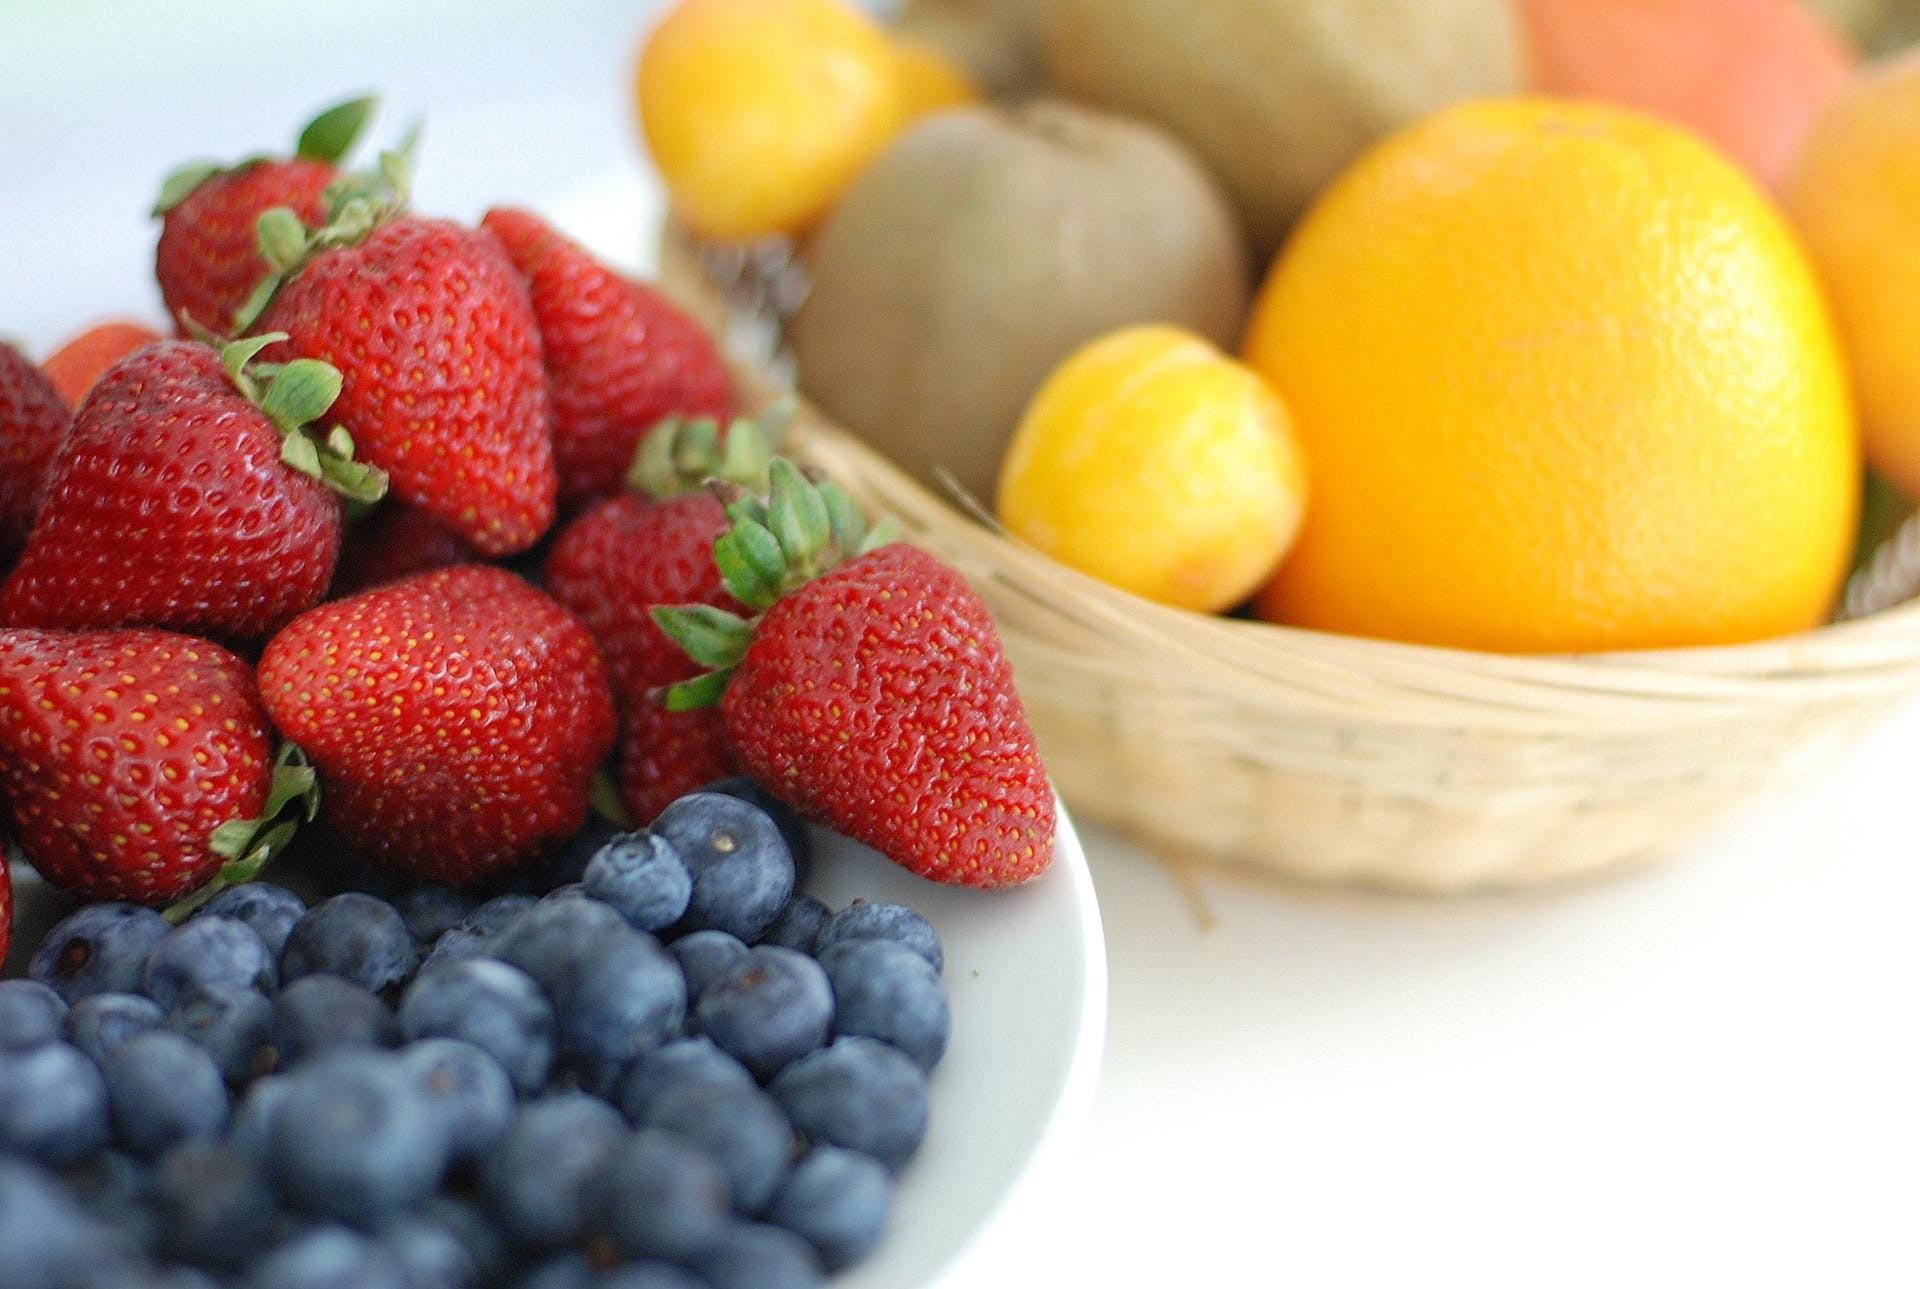 Red Strawberry, Blue Berry on White Plate Near Brown Woven Basket